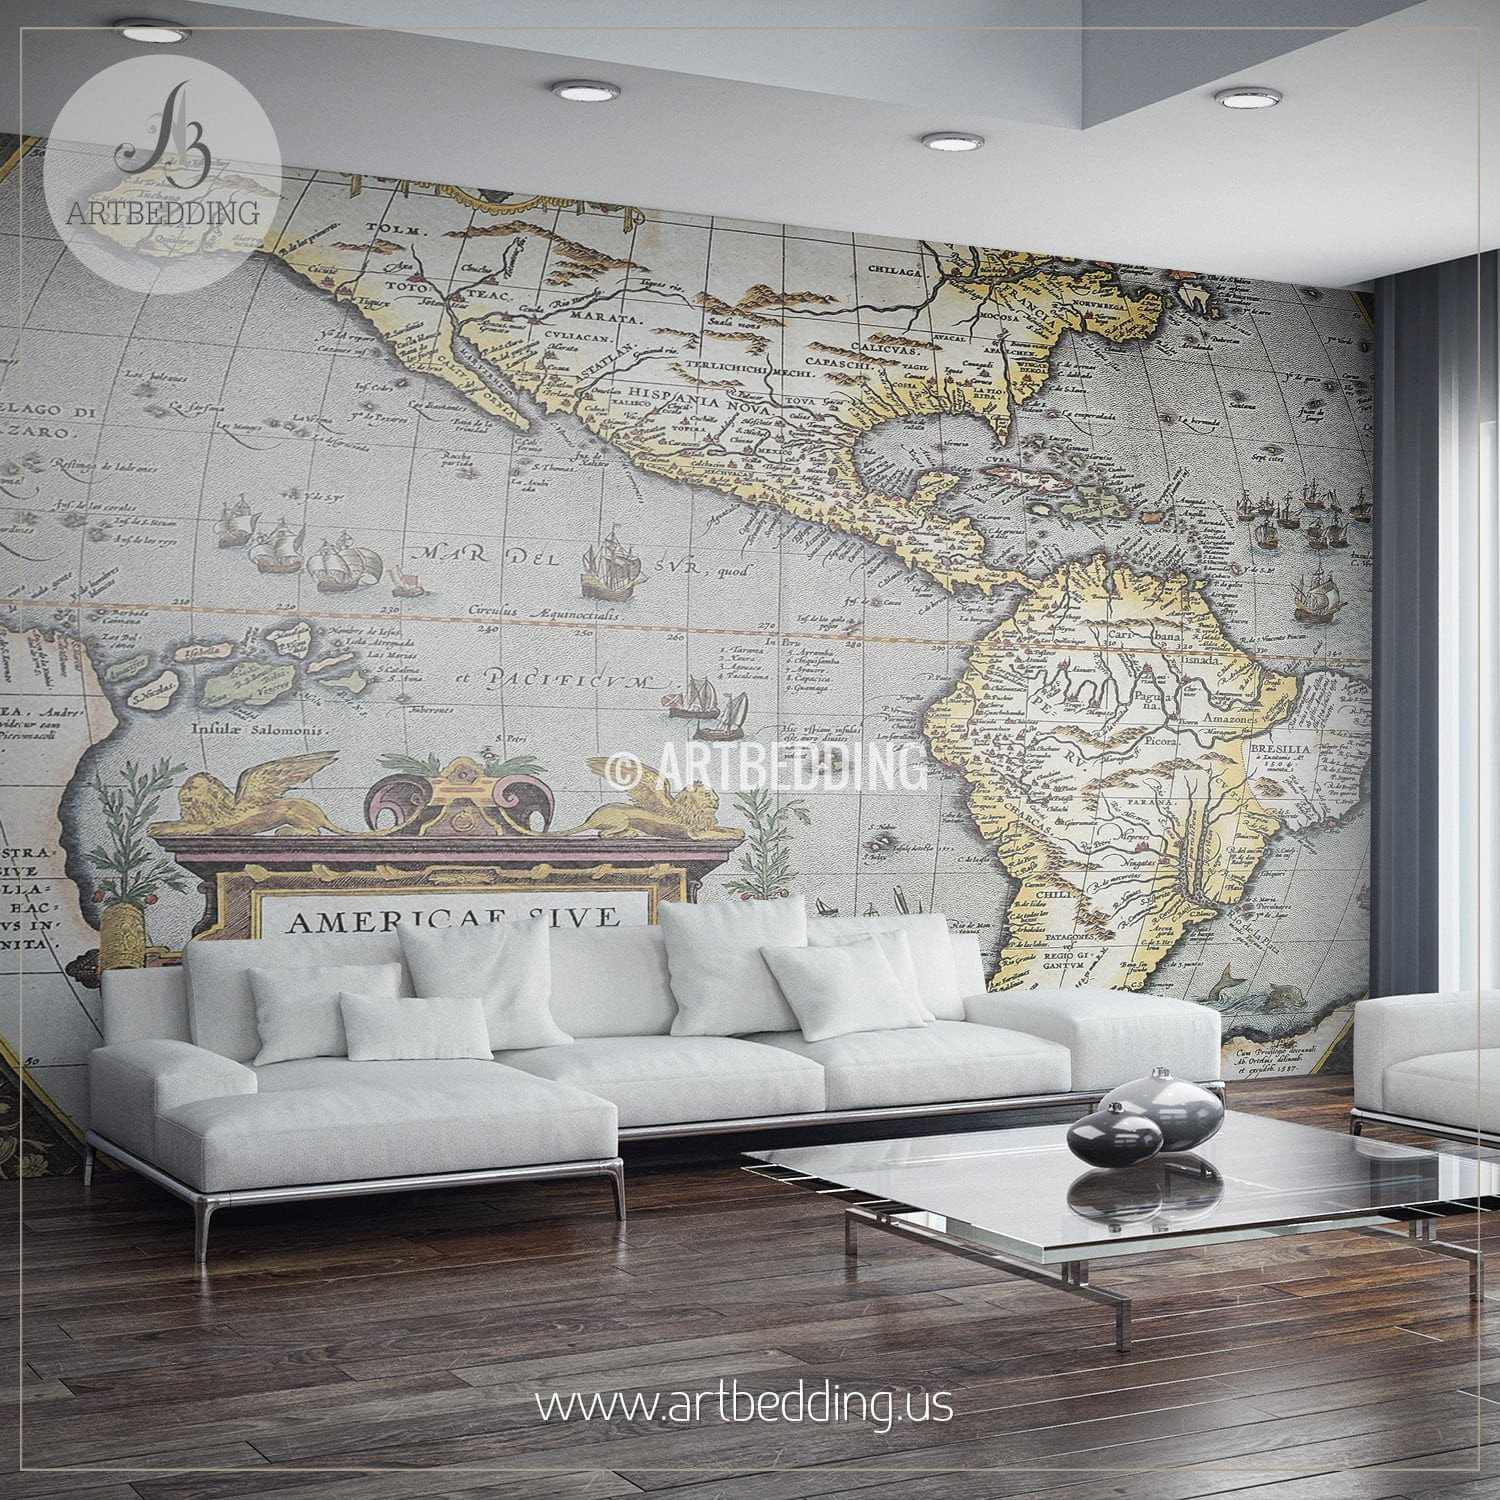 Décoration Murale Adhésive First Atlas Of America In The World 1570 Wall Mural Self Adhesive Peel Stick Photo Mural Atlas Wall Mural Mural Home Decor